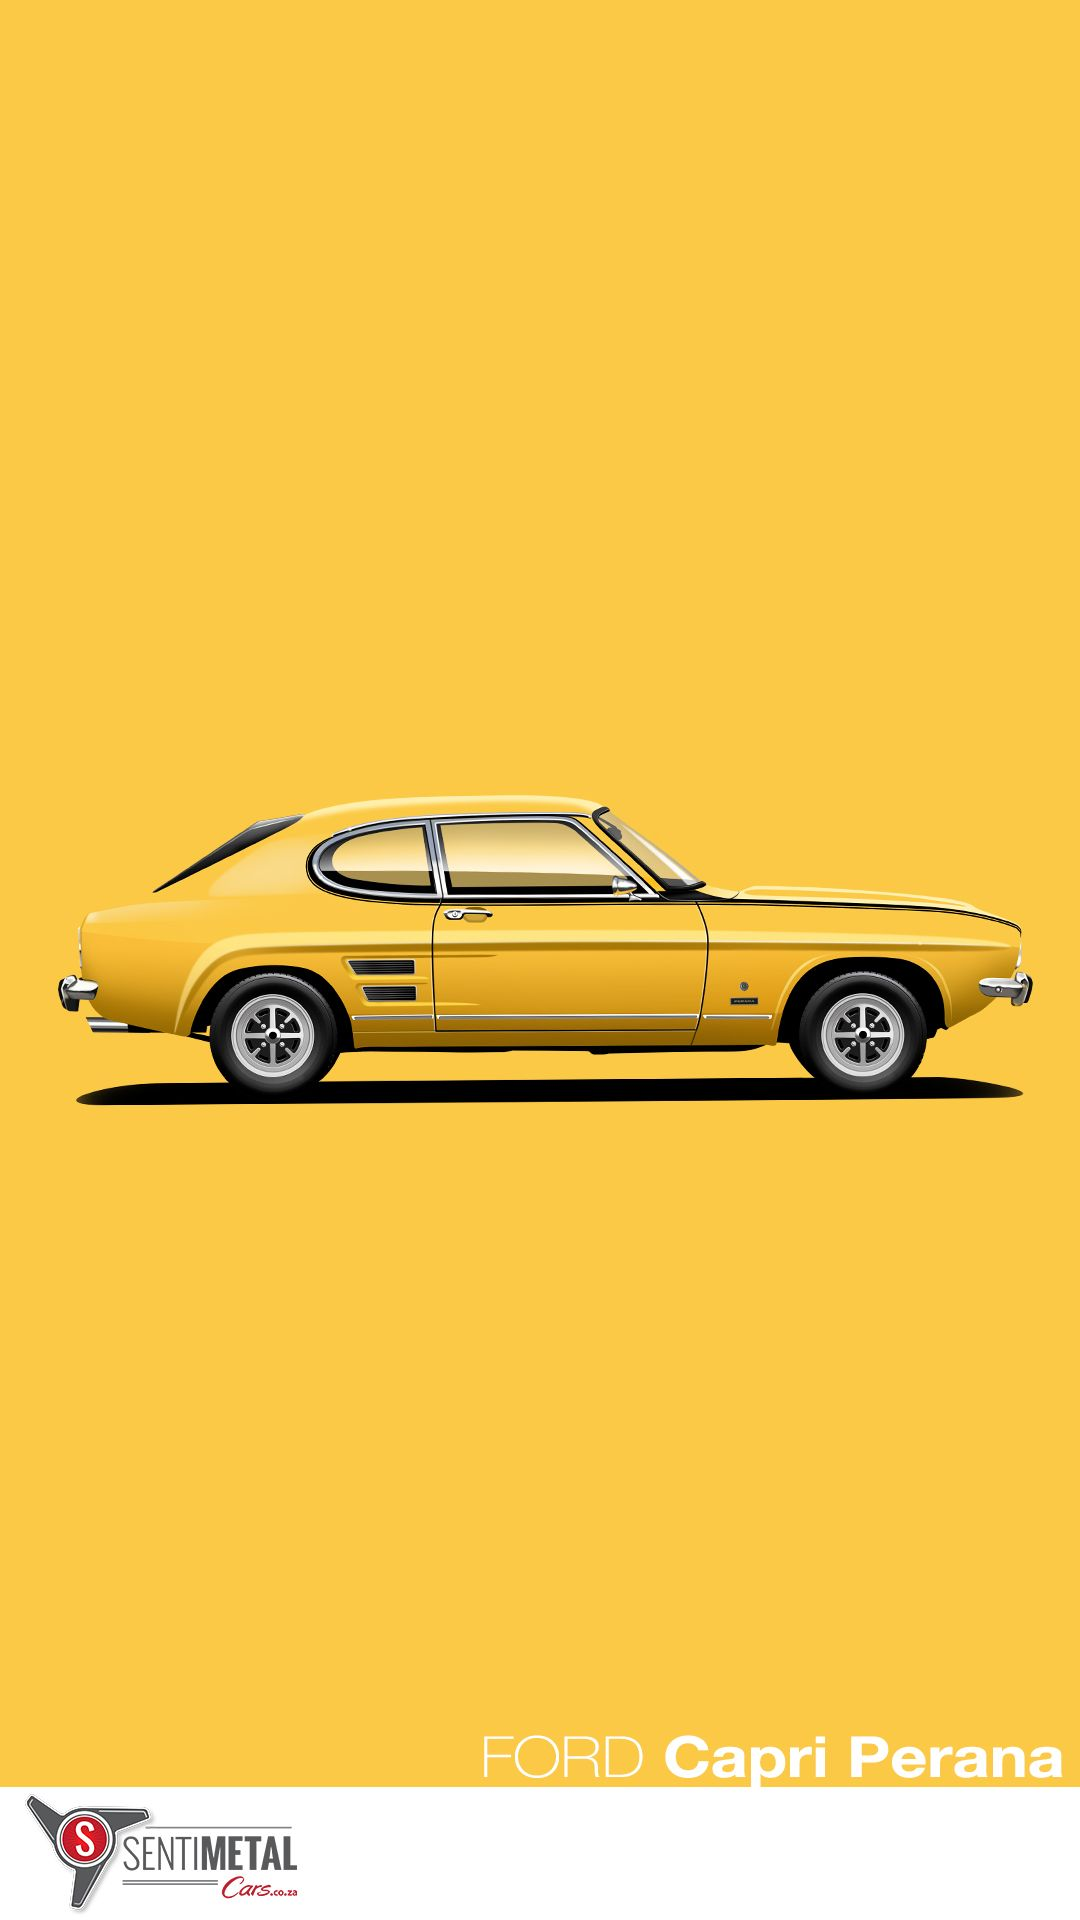 Ford Capri Perana . Developed locally by Motorsport legend Basil Green, and with full Ford factory